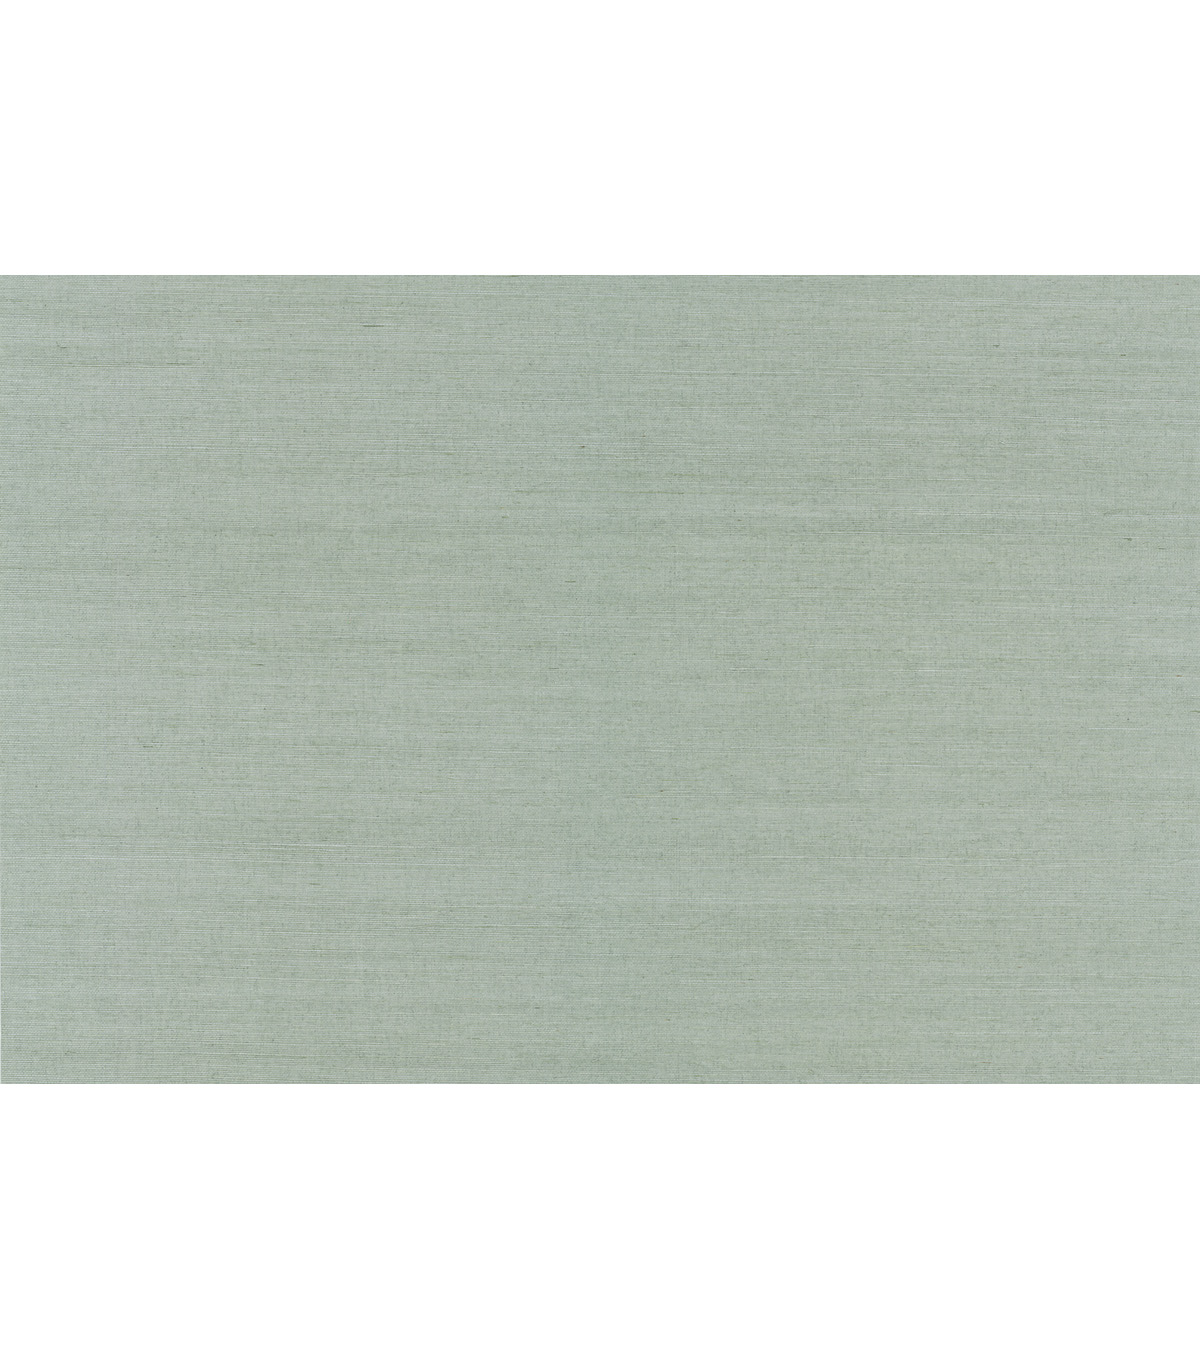 Isaku Light Green Grasscloth Wallpaper Sample